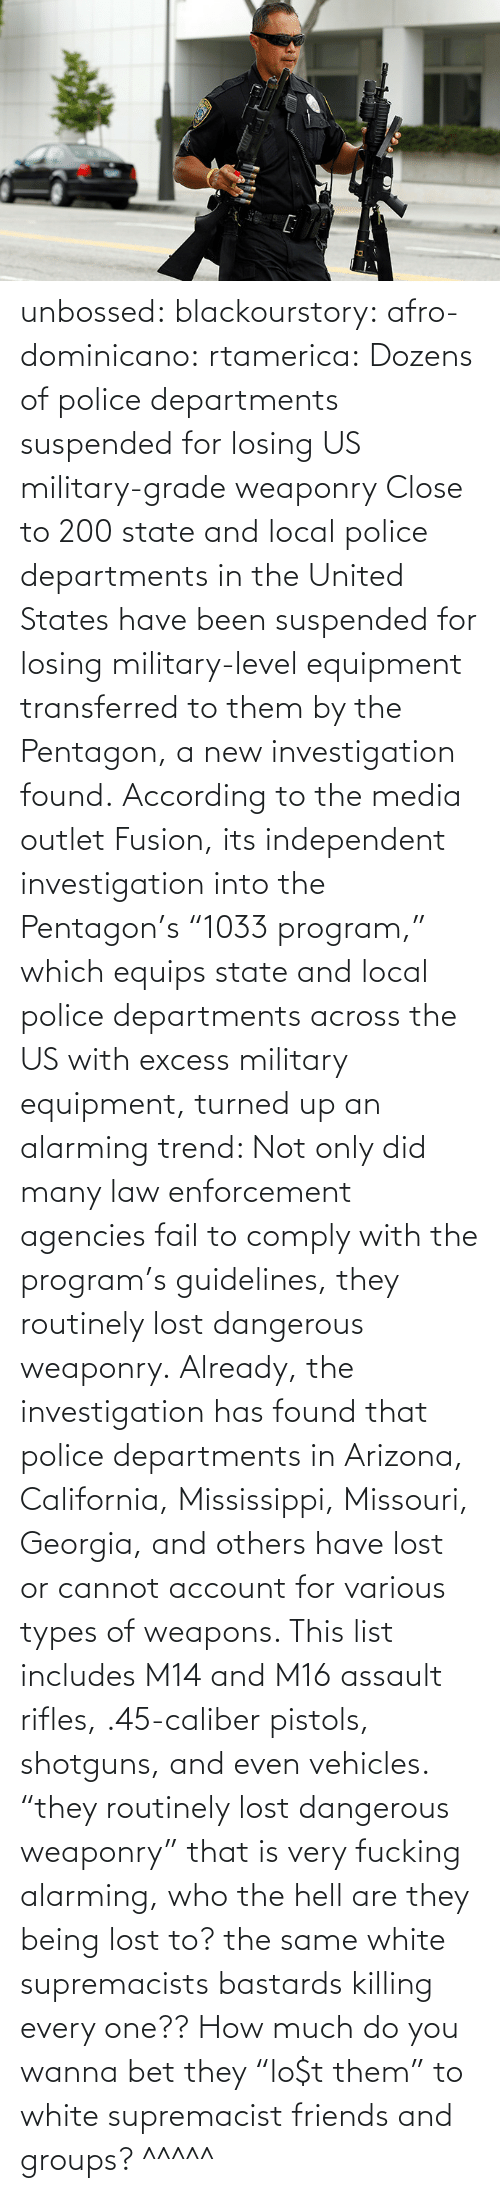 """Fail, Friends, and Police: unbossed: blackourstory:  afro-dominicano:  rtamerica:  Dozens of police departments suspended for losing US military-grade weaponry Close to 200 state and local police departments in the United States have been suspended for losing military-level equipment transferred to them by the Pentagon, a new investigation found. According to the media outletFusion, its independent investigation into the Pentagon's """"1033 program,"""" which equips state and local police departments across the US with excess military equipment, turned up an alarming trend: Not only did many law enforcement agencies fail to comply with the program's guidelines, they routinely lost dangerous weaponry. Already, the investigation has found that police departments in Arizona, California, Mississippi, Missouri, Georgia, and others have lost or cannot account for various types of weapons. This list includes M14 and M16 assault rifles, .45-caliber pistols, shotguns, and even vehicles.  """"they routinely lost dangerous weaponry"""" that is very fucking alarming, who the hell are they being lost to? the same white supremacists bastards killing every one??  How much do you wanna bet they """"lo$t them"""" to white supremacist friends and groups?   ^^^^^"""